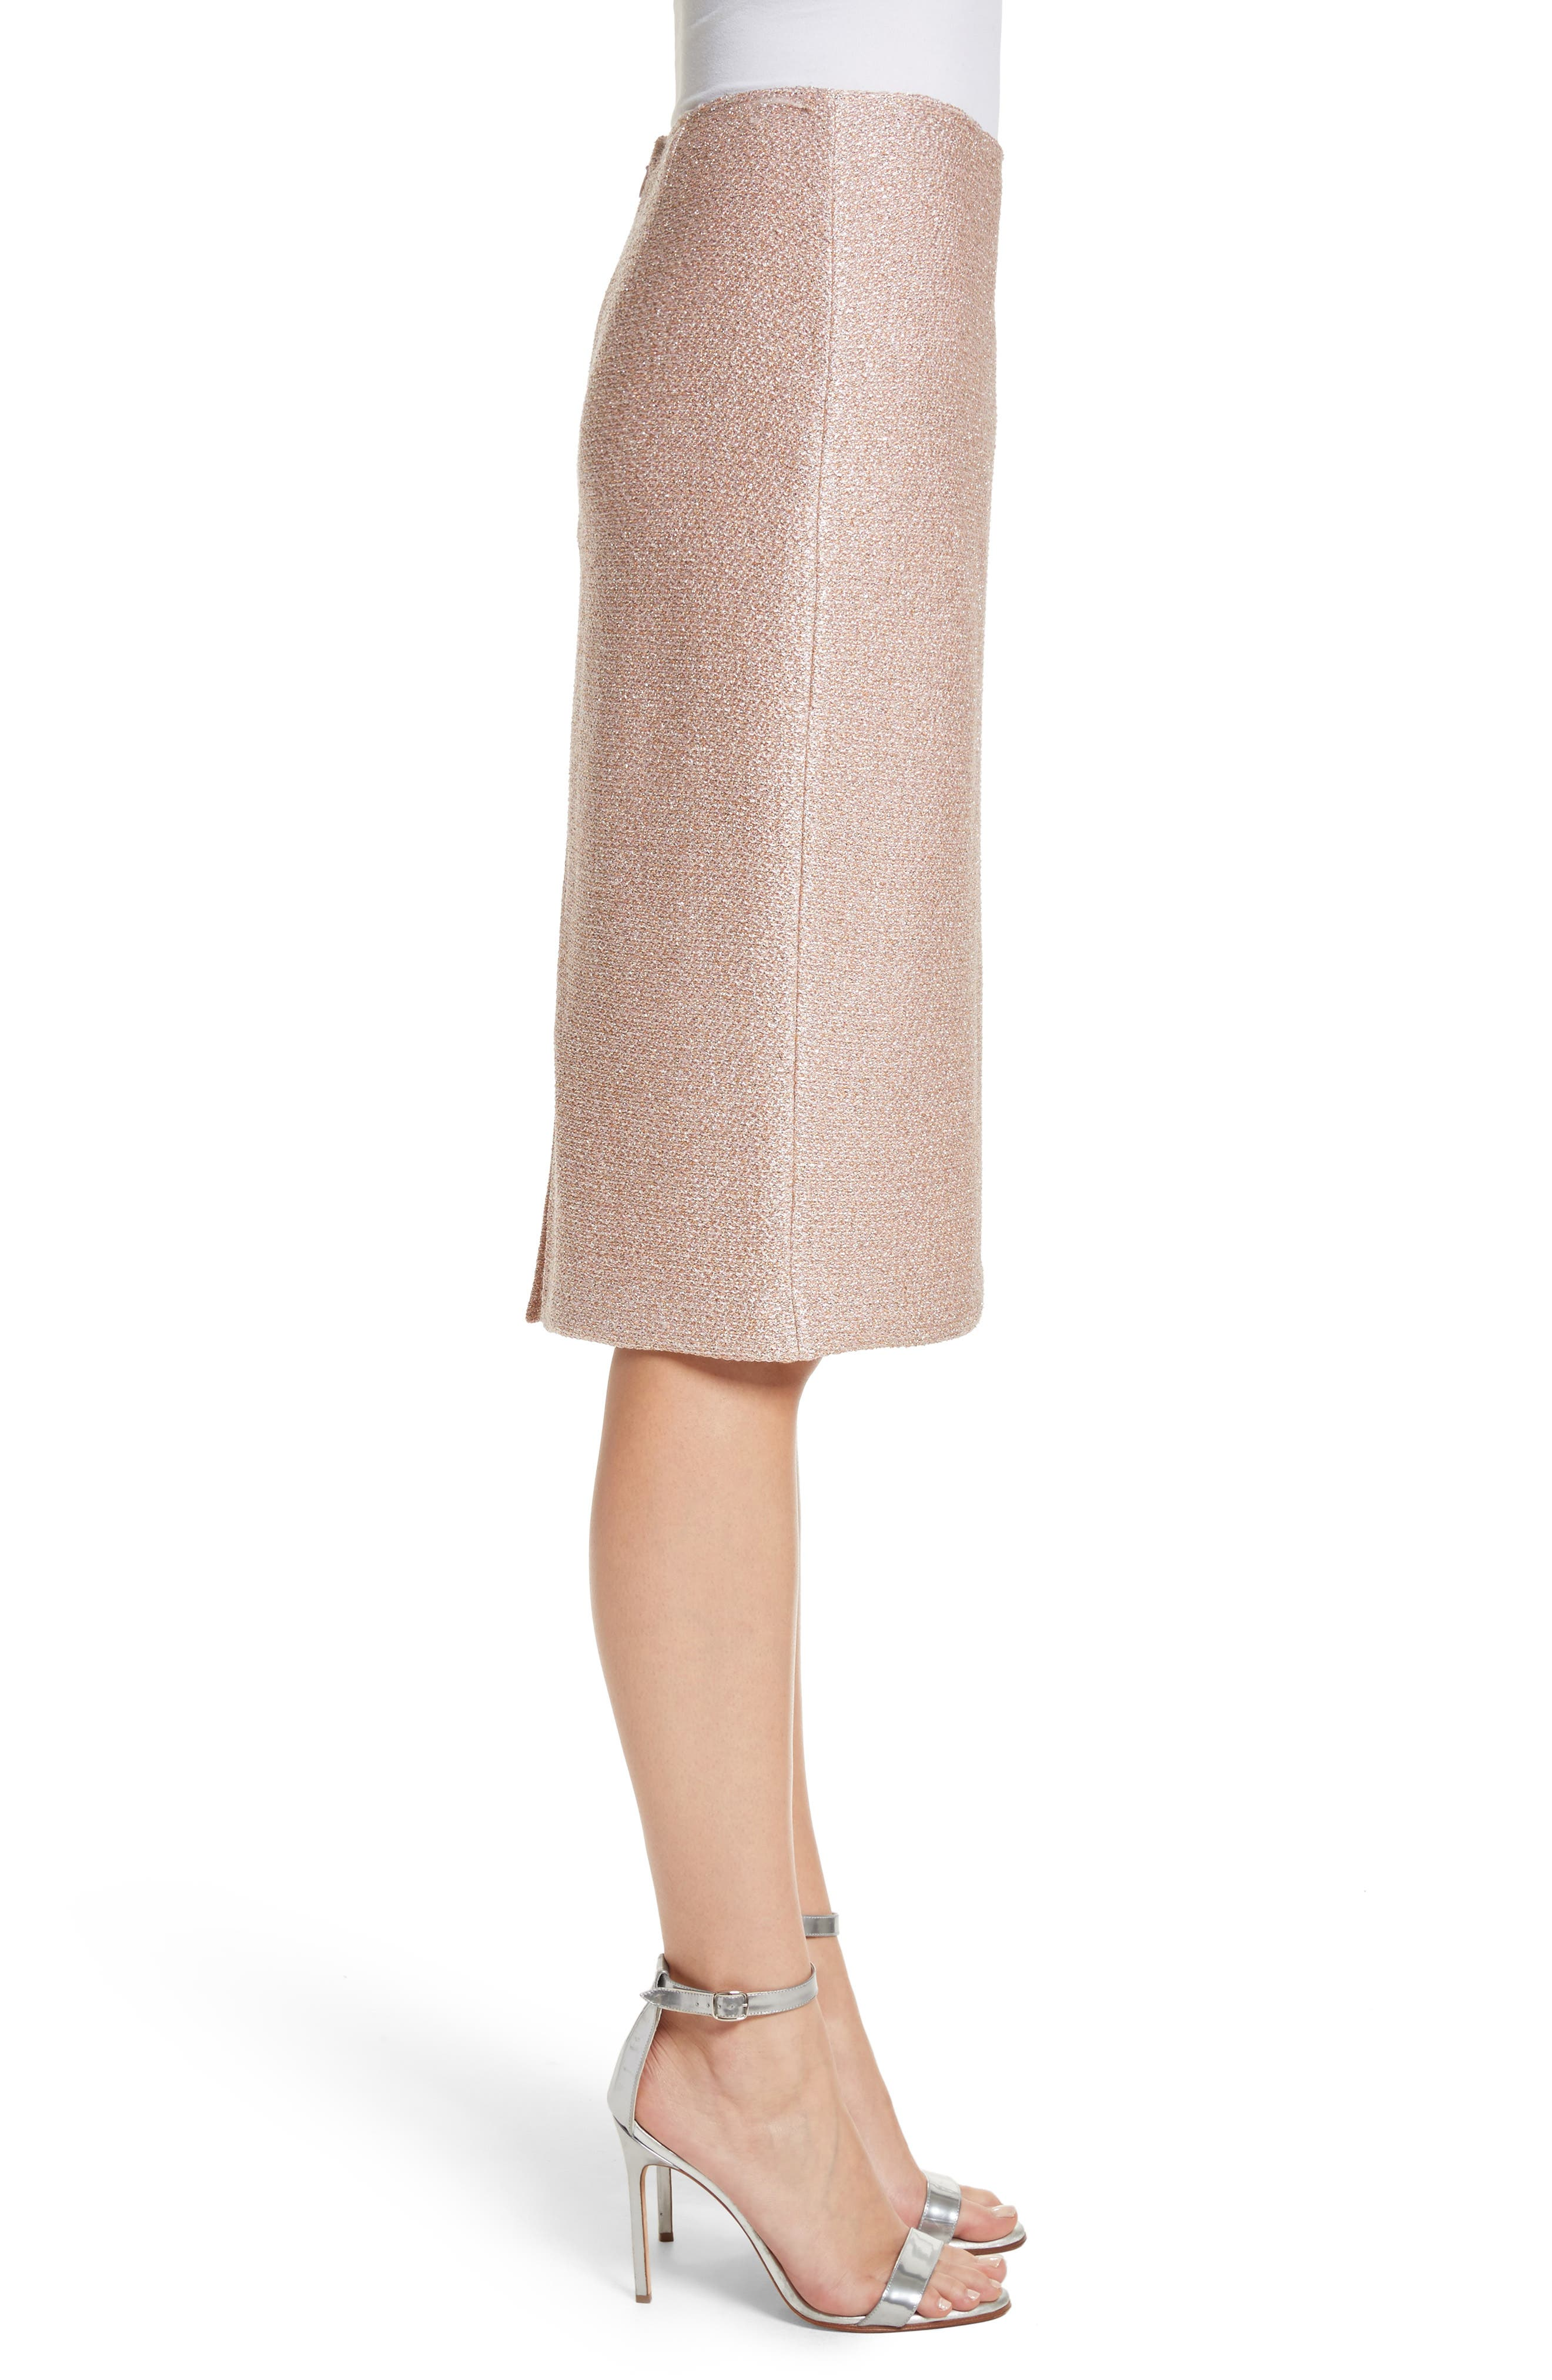 Frosted Metallic Knit Pencil Skirt,                             Alternate thumbnail 3, color,                             660